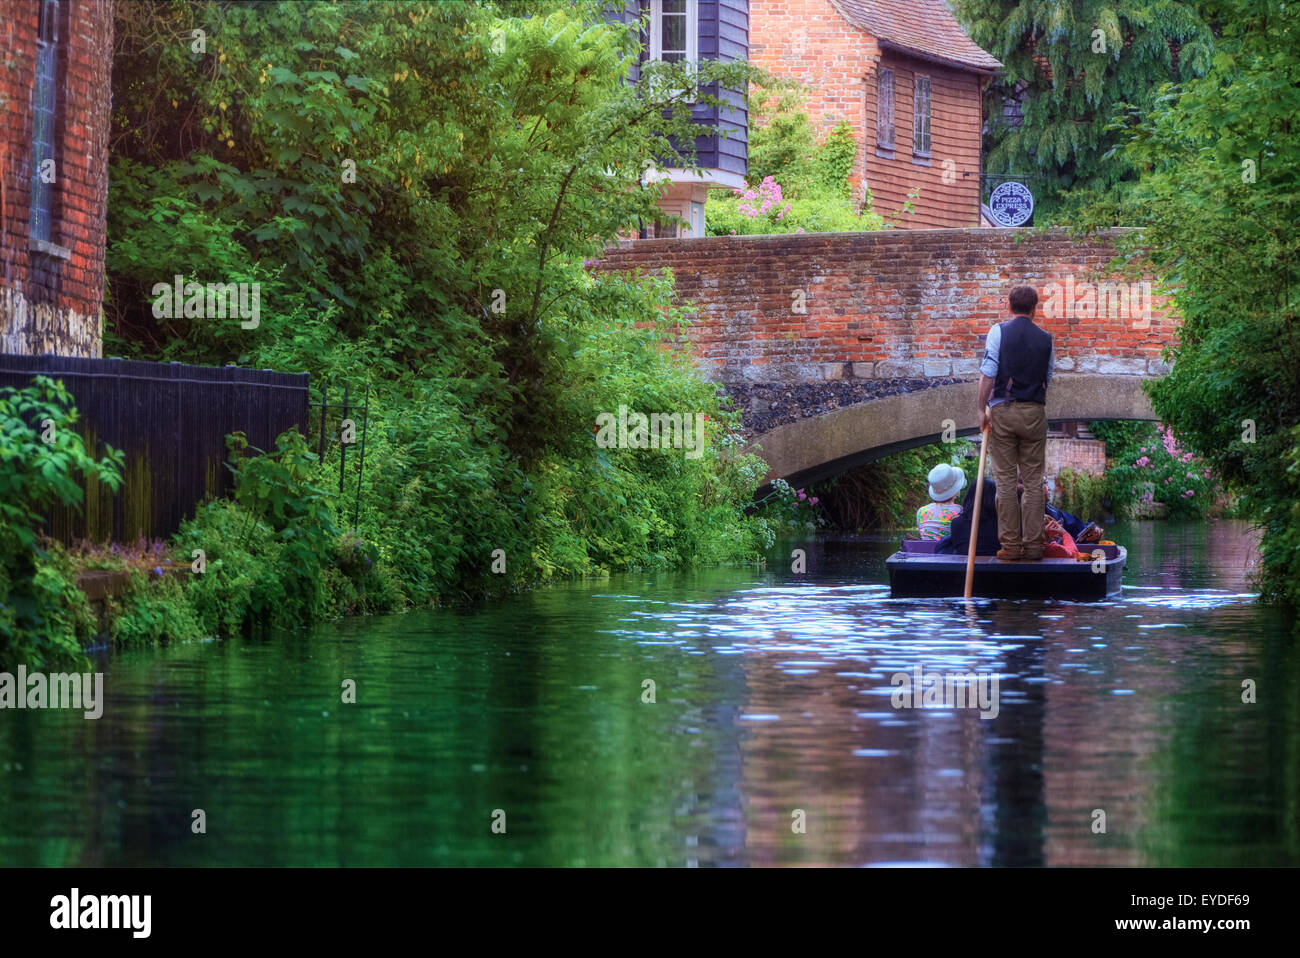 Canterbury, Hythe, dans le Kent, Angleterre, Royaume-Uni Photo Stock